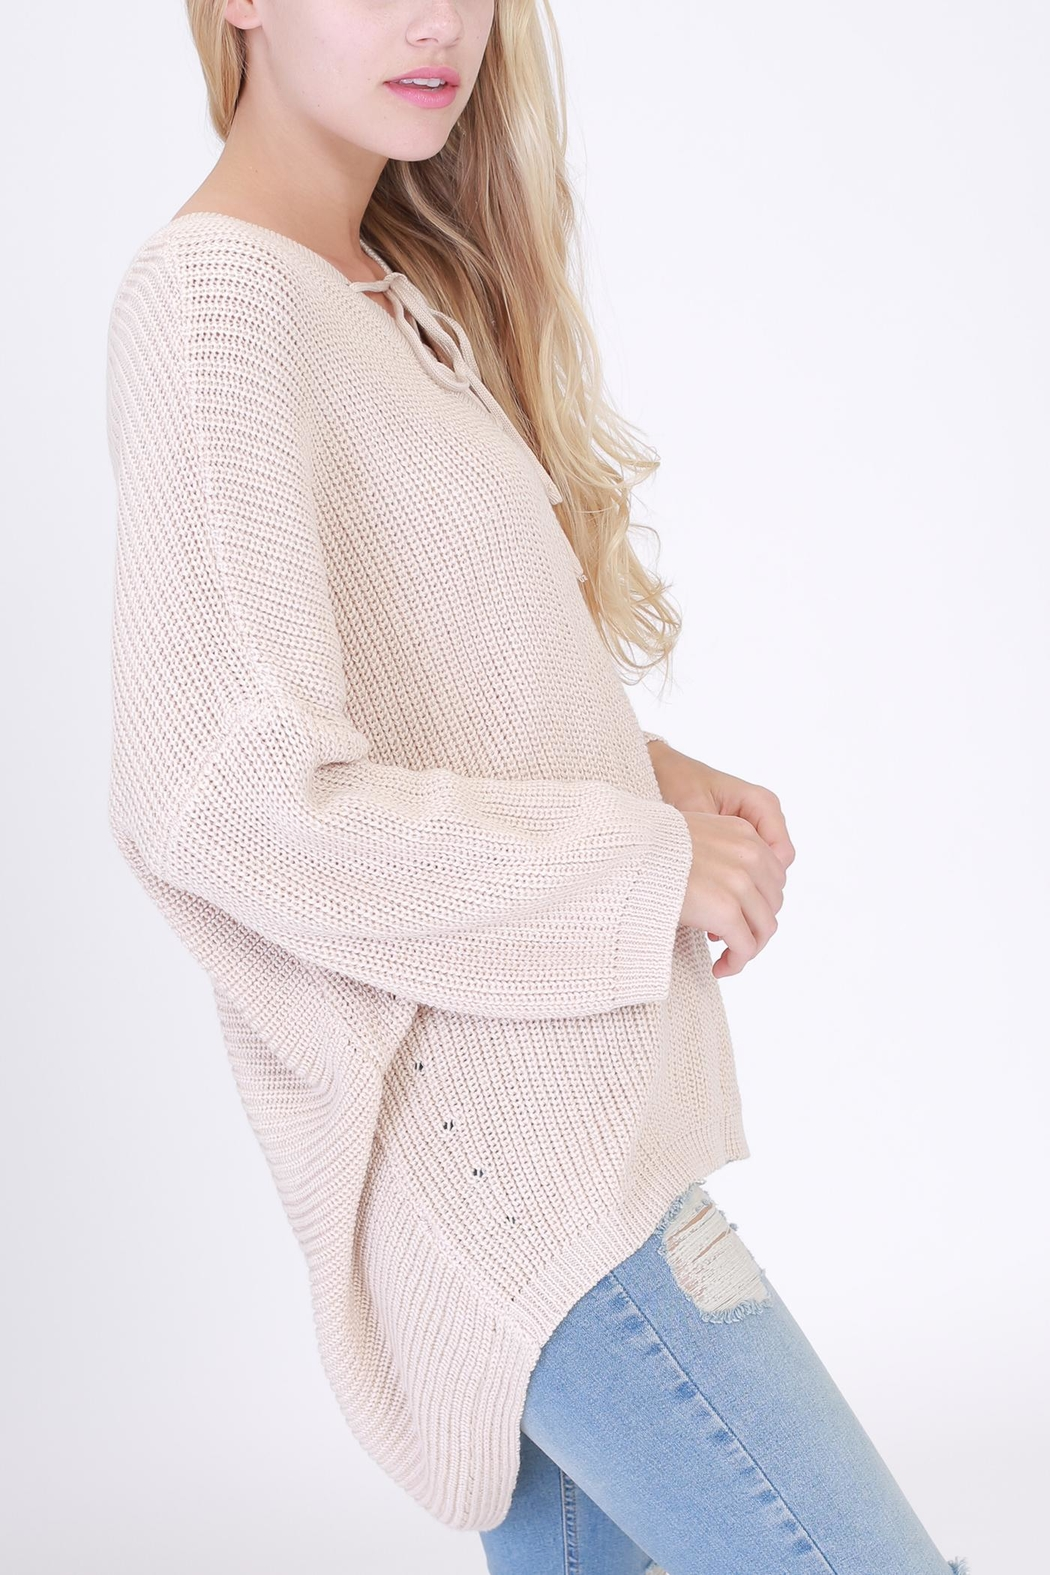 HYFVE Lace Up Sweater - Front Full Image